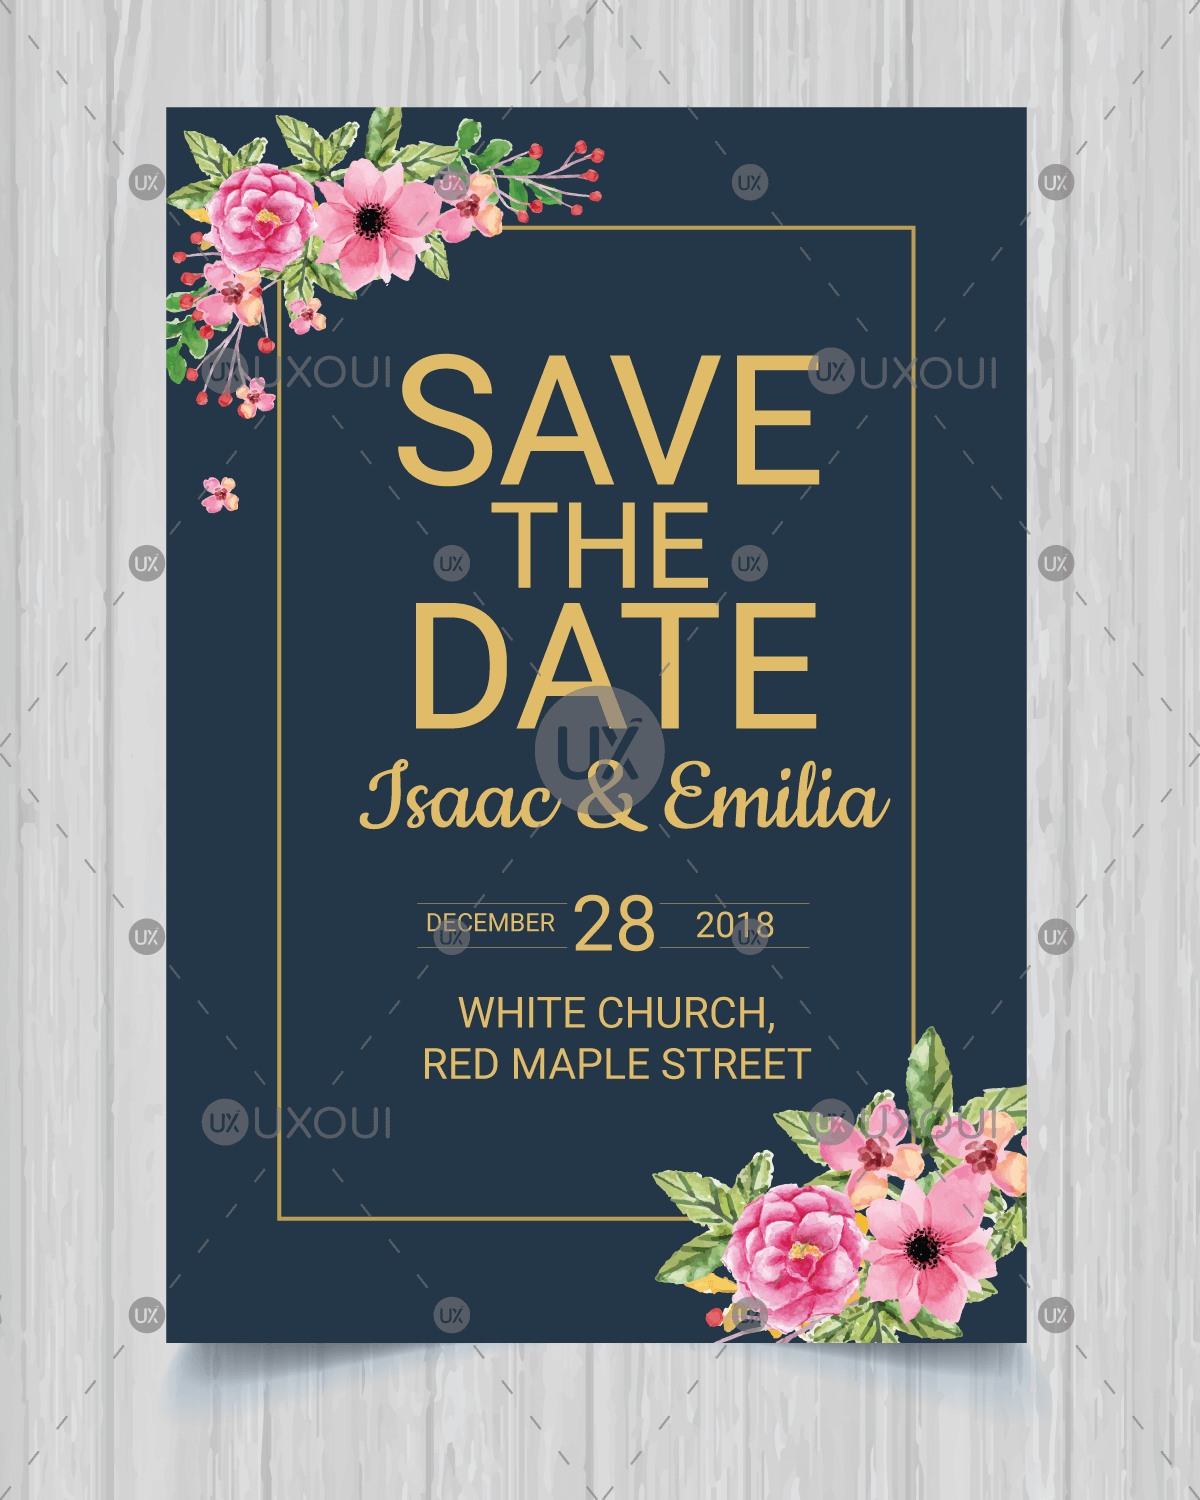 Save The Date Invitation Card Design Wedding Template Vector With Flowers Uxoui